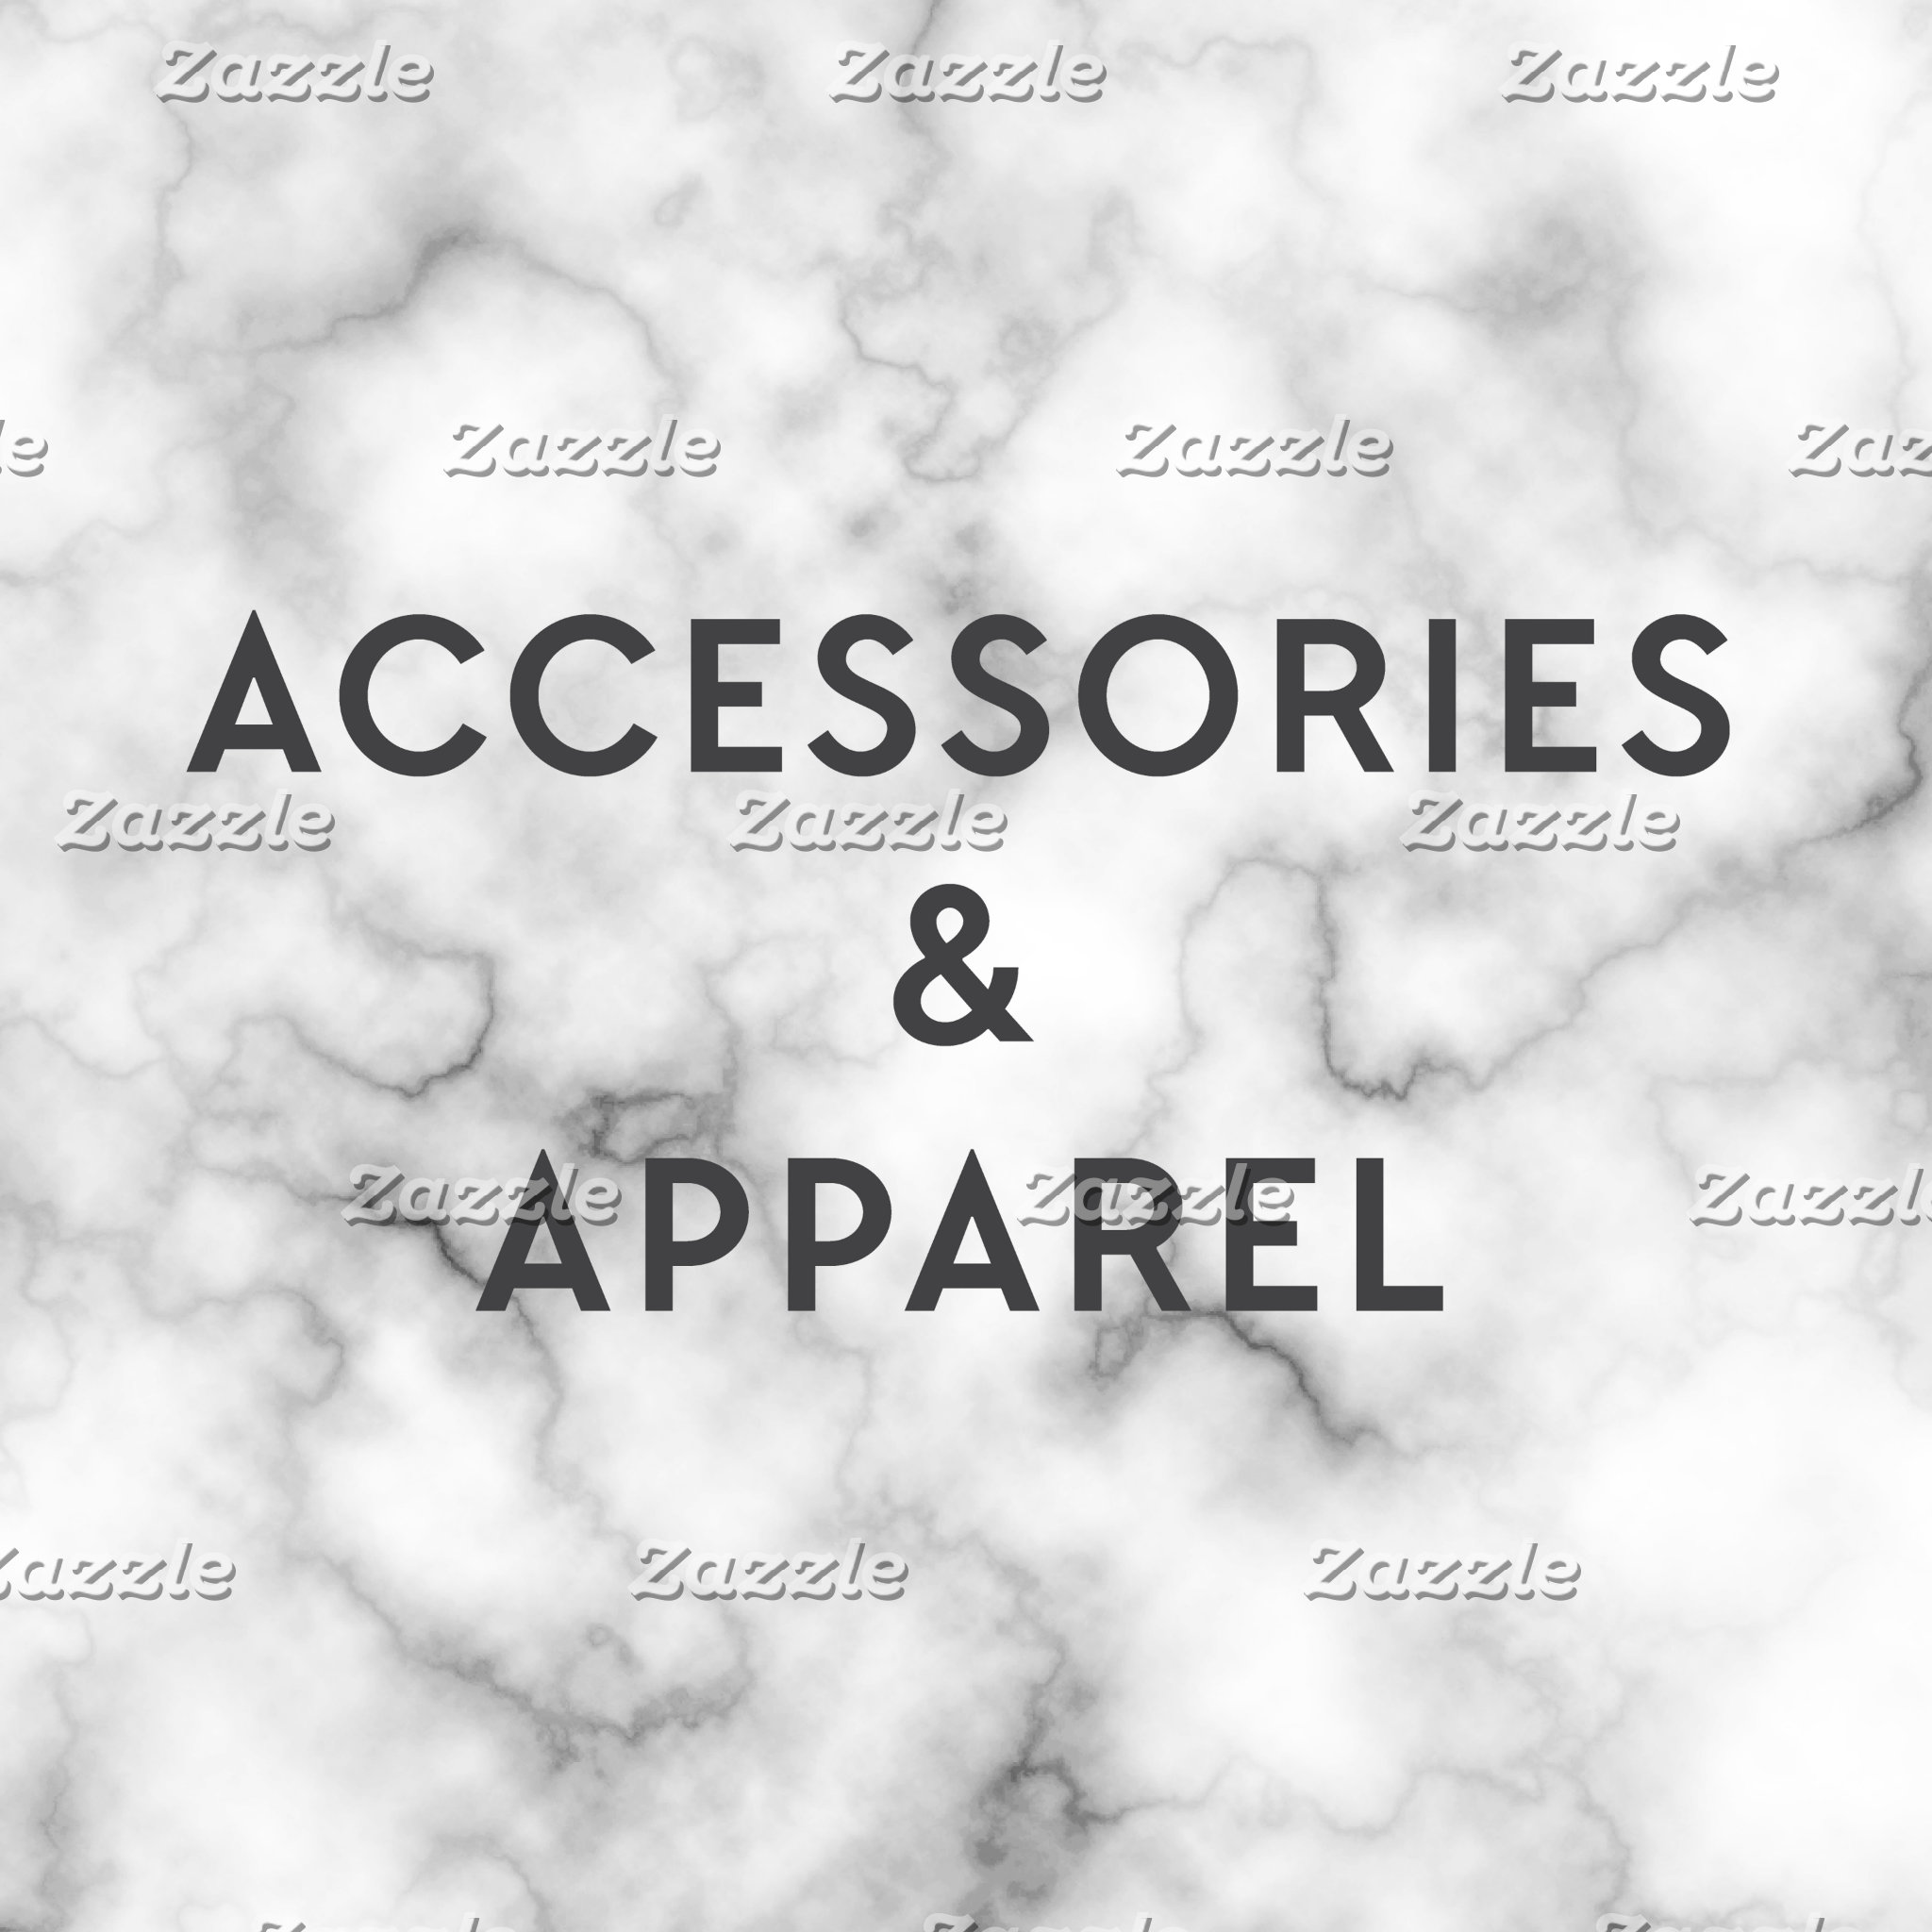 Accessories and Apparel